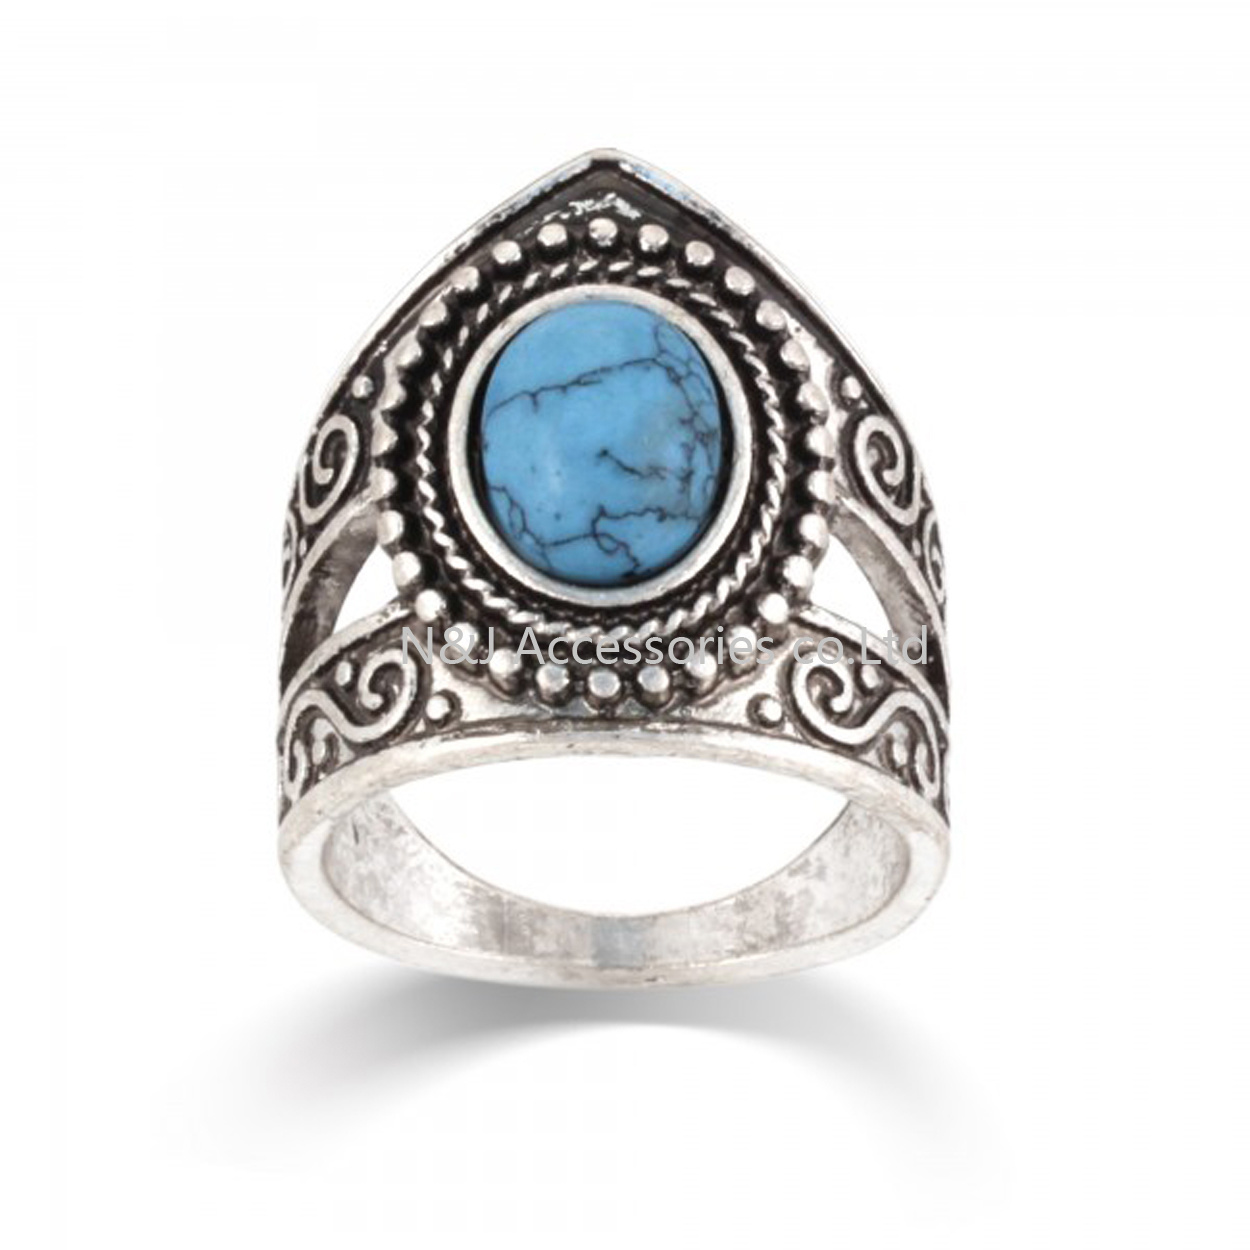 Tibetan Silver Inlay Synthetic Turquoise Stone Ring Nepal Original Antiqued Ring Wholesale Tibet Rings